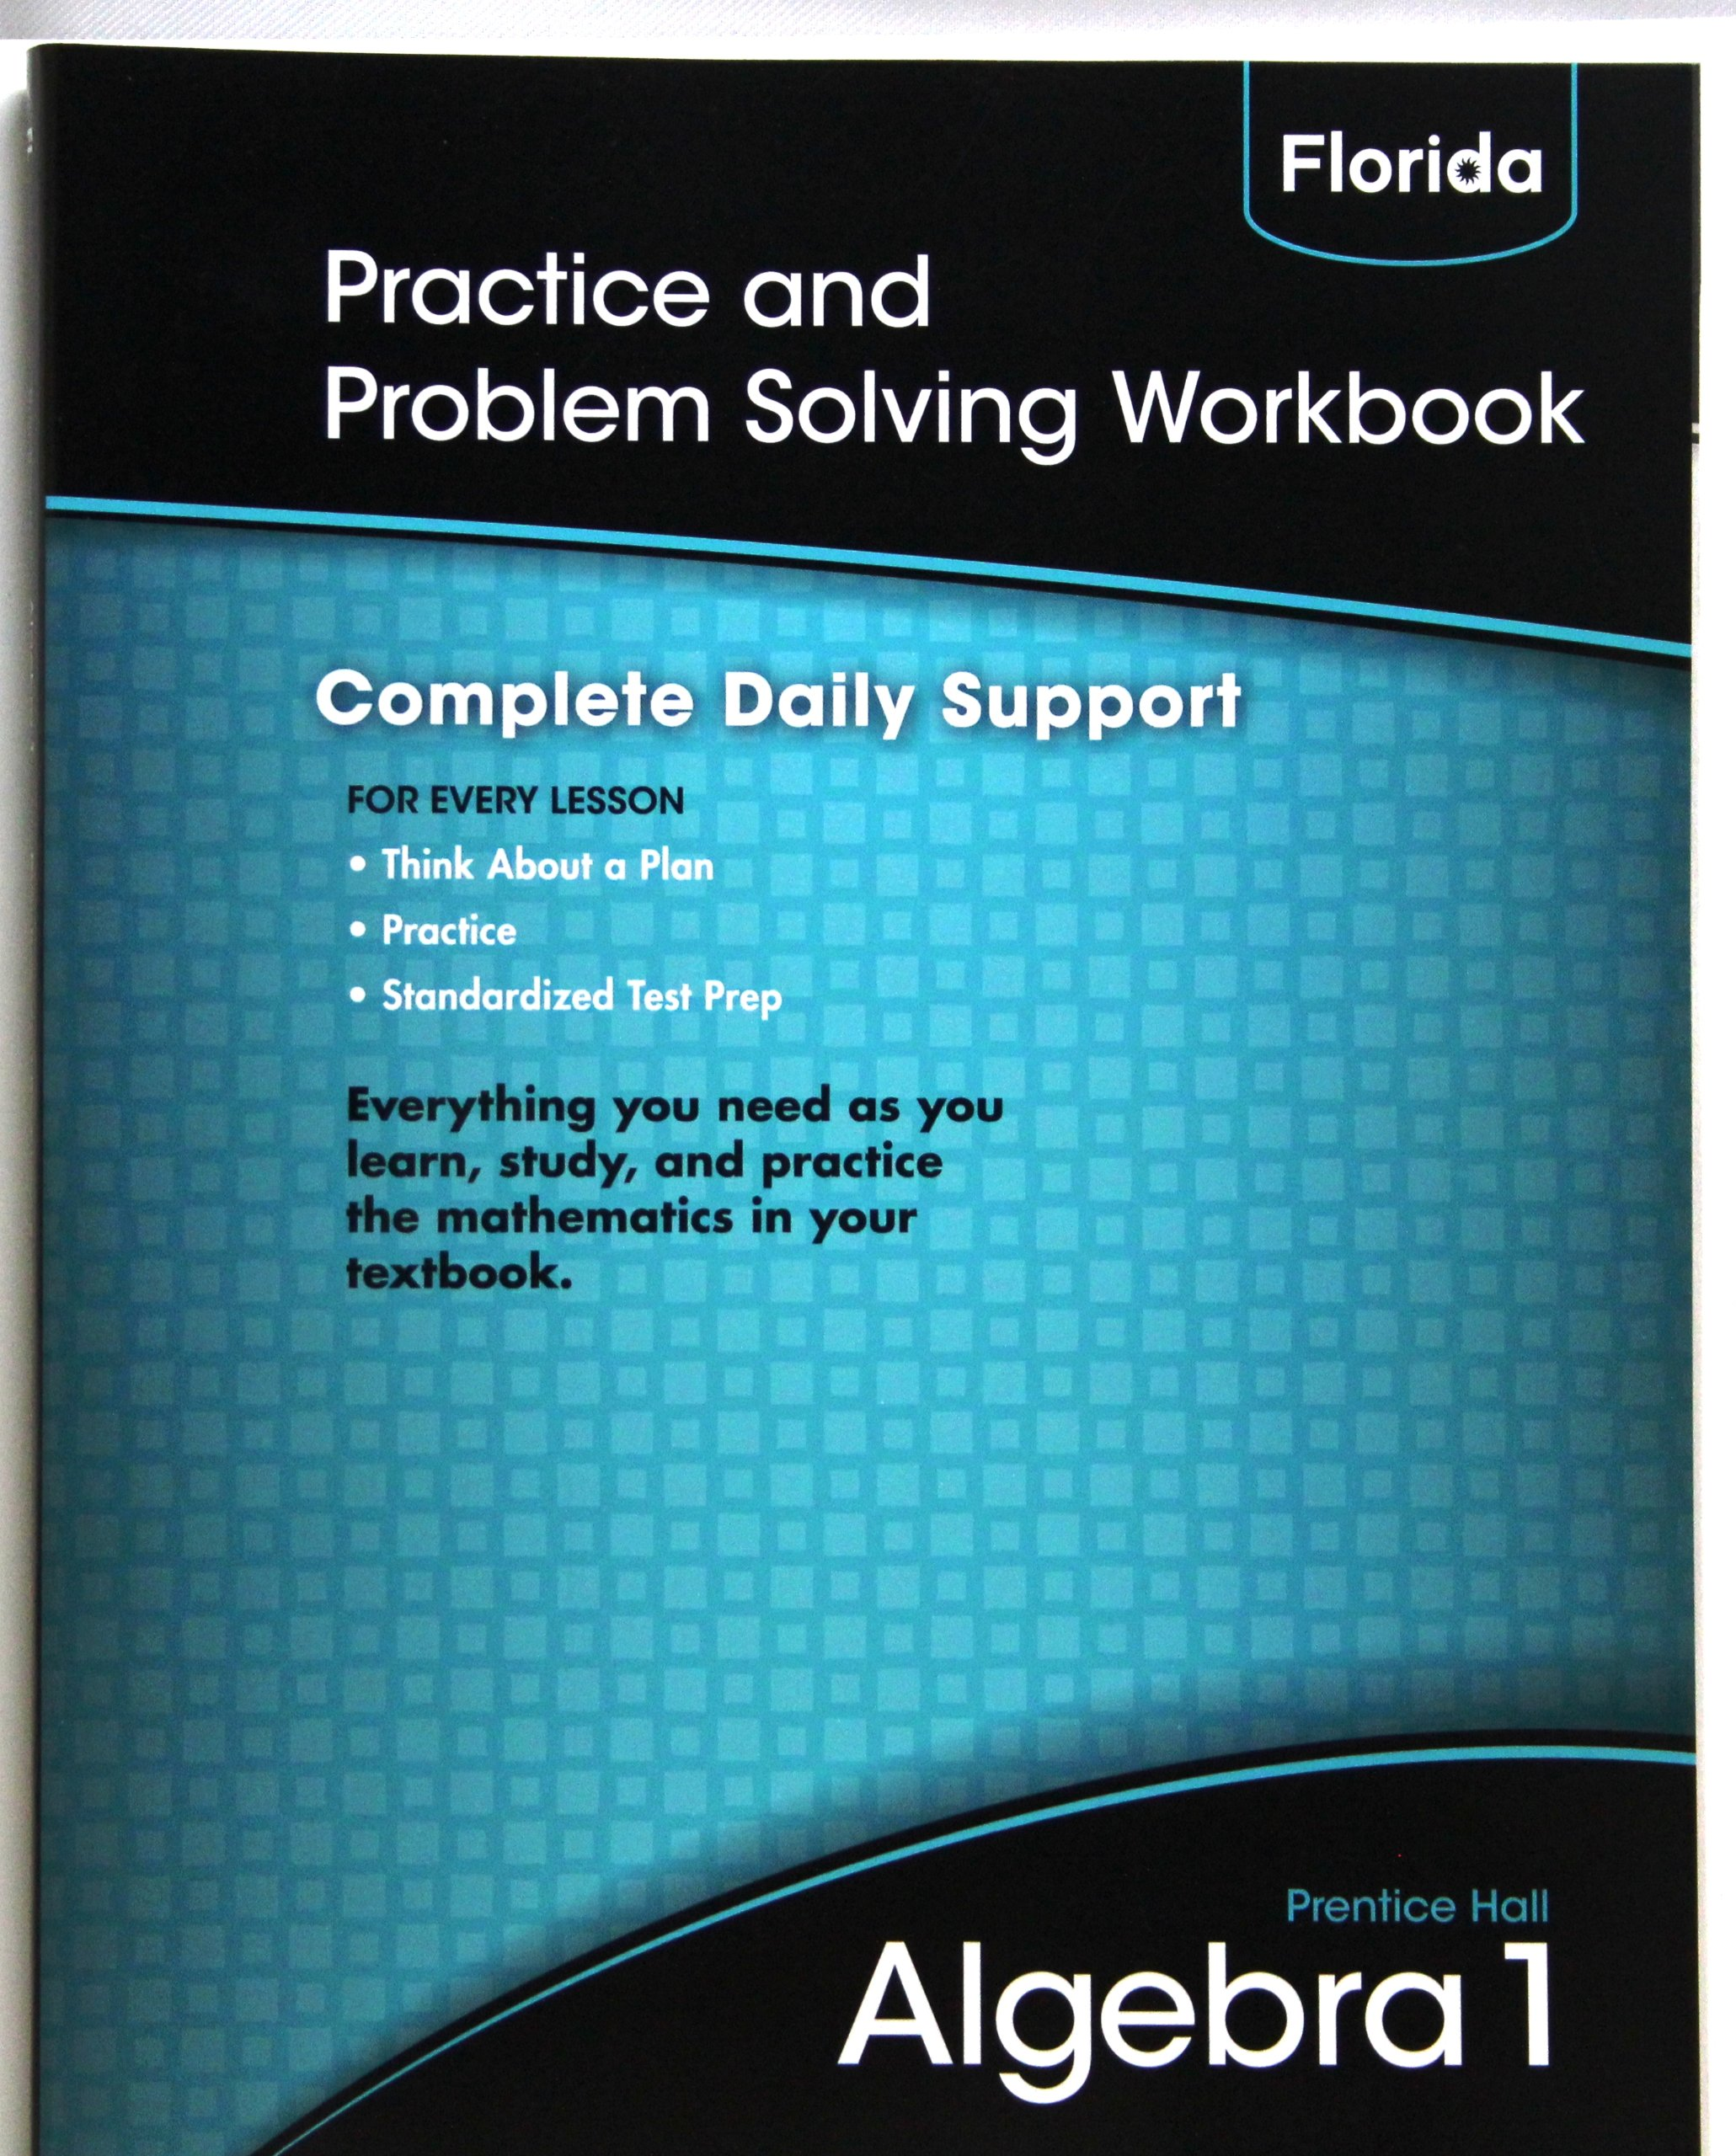 prentice hall algebra 1 practice and problem solving workbook answer key